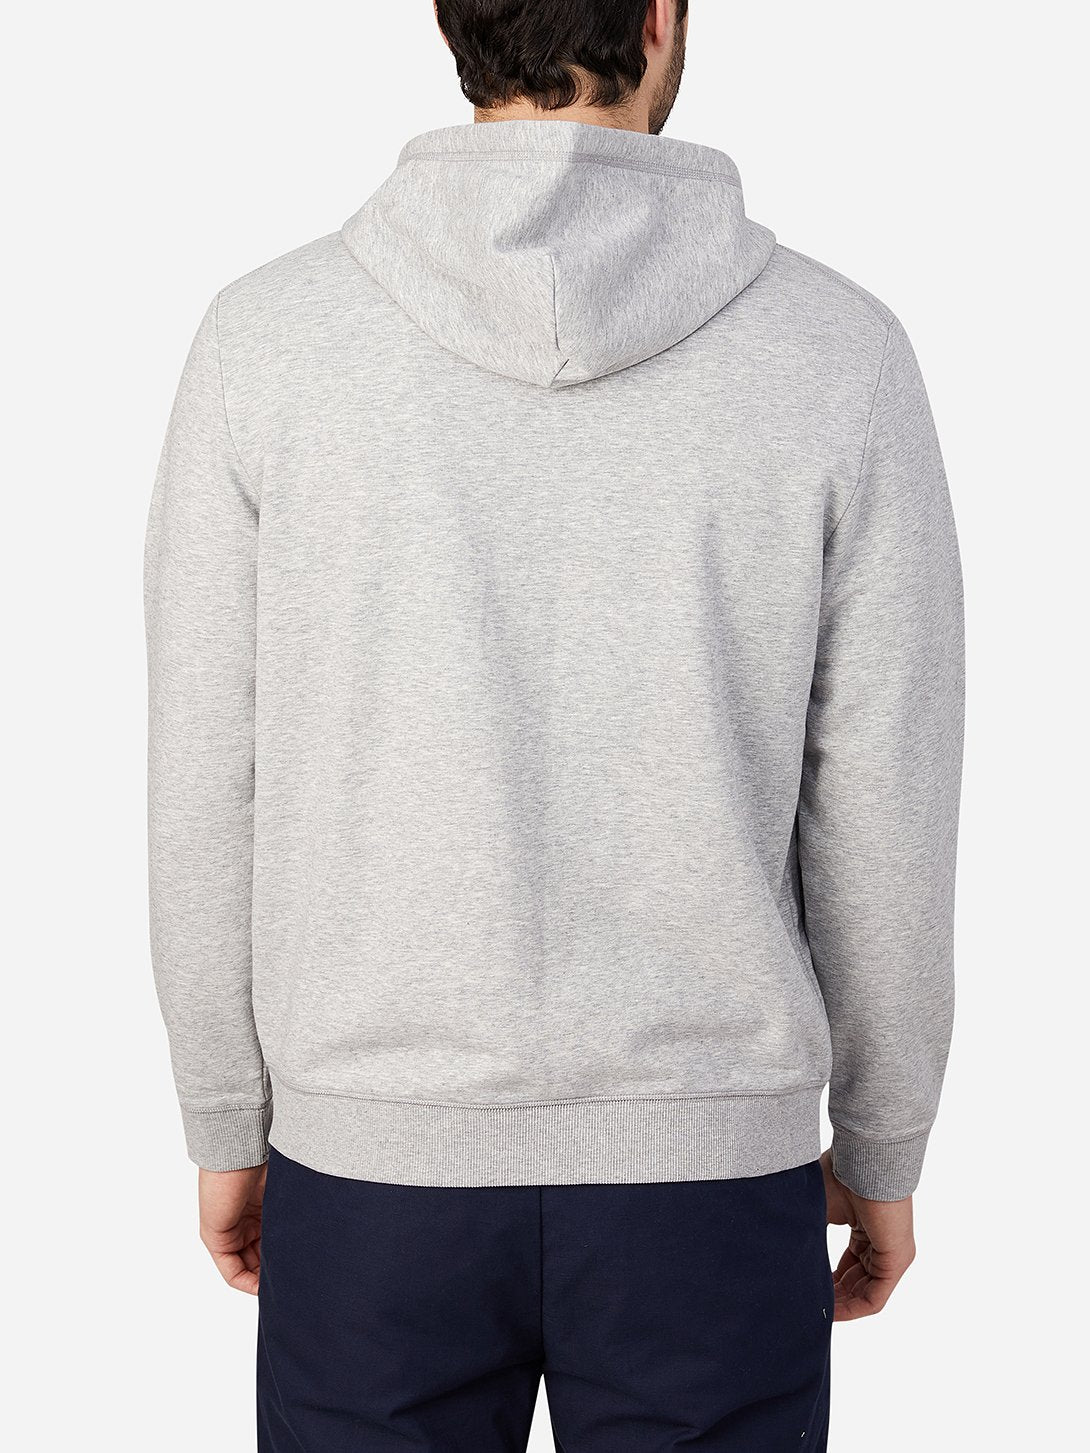 HEATHER GRAY zip sweatshirt for men zip hoodie ons clothing black friday deals